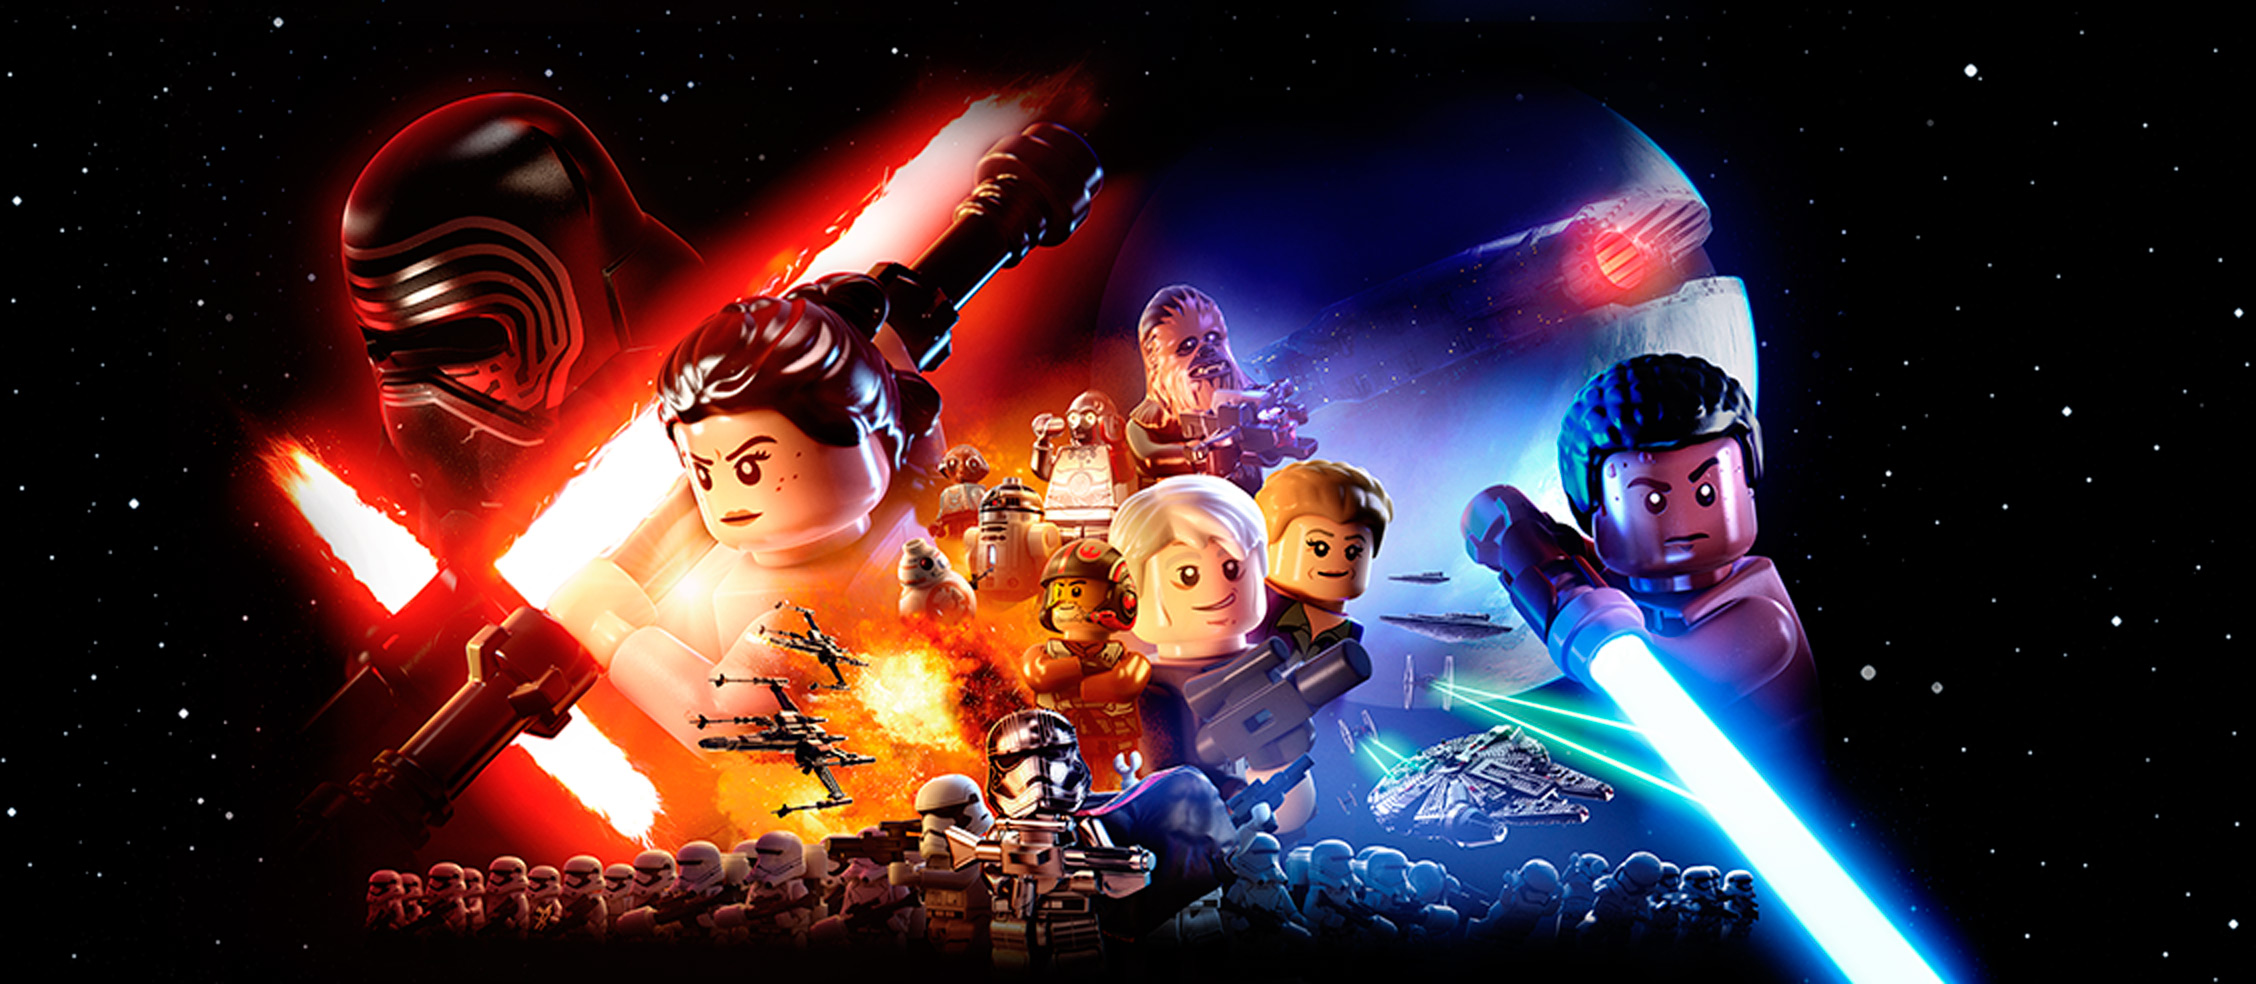 lego star wars the force awakens gets new trailer to celebrate star wars day. Black Bedroom Furniture Sets. Home Design Ideas